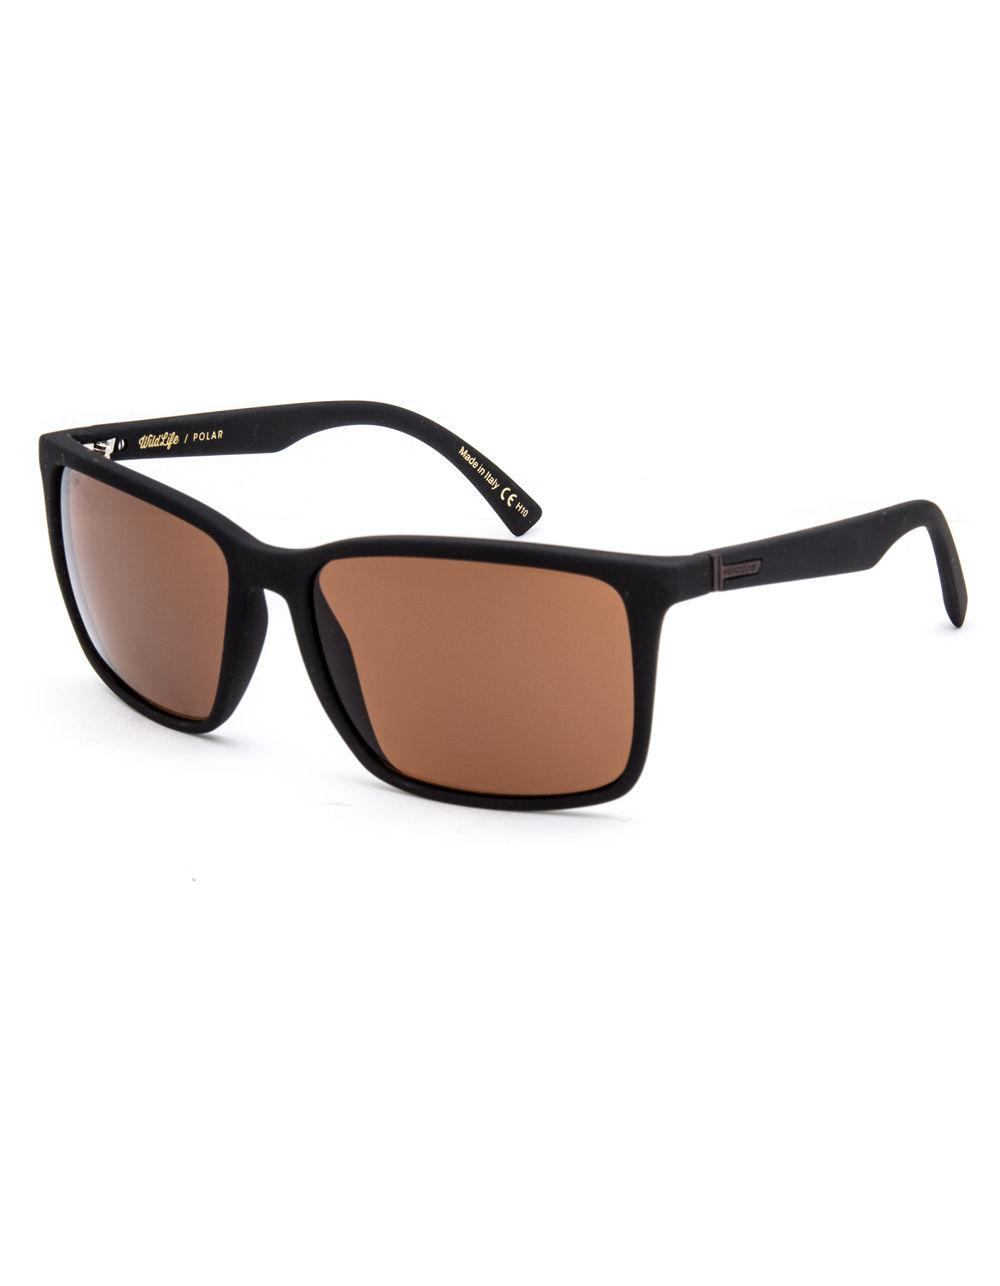 86eed4fb6c8 Von Zipper. Men s Lesmore Wildlife Black Soft Satin   Bronze Polarized  Sunglasses